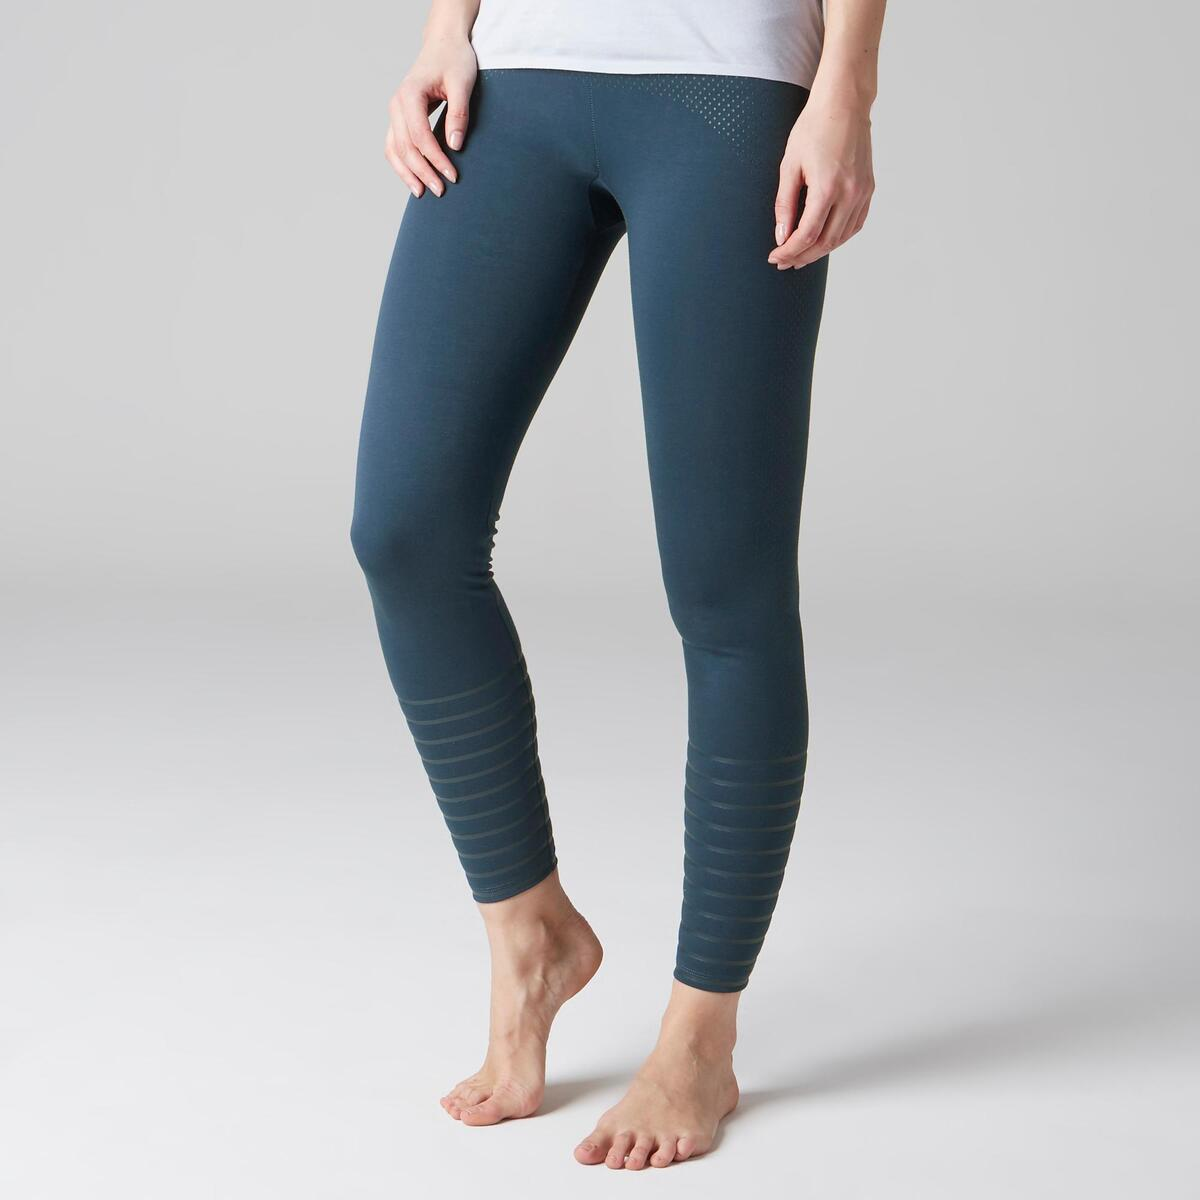 Bild 2 von Leggings 900 Slim Gym Stretching & Pilates Damen blau